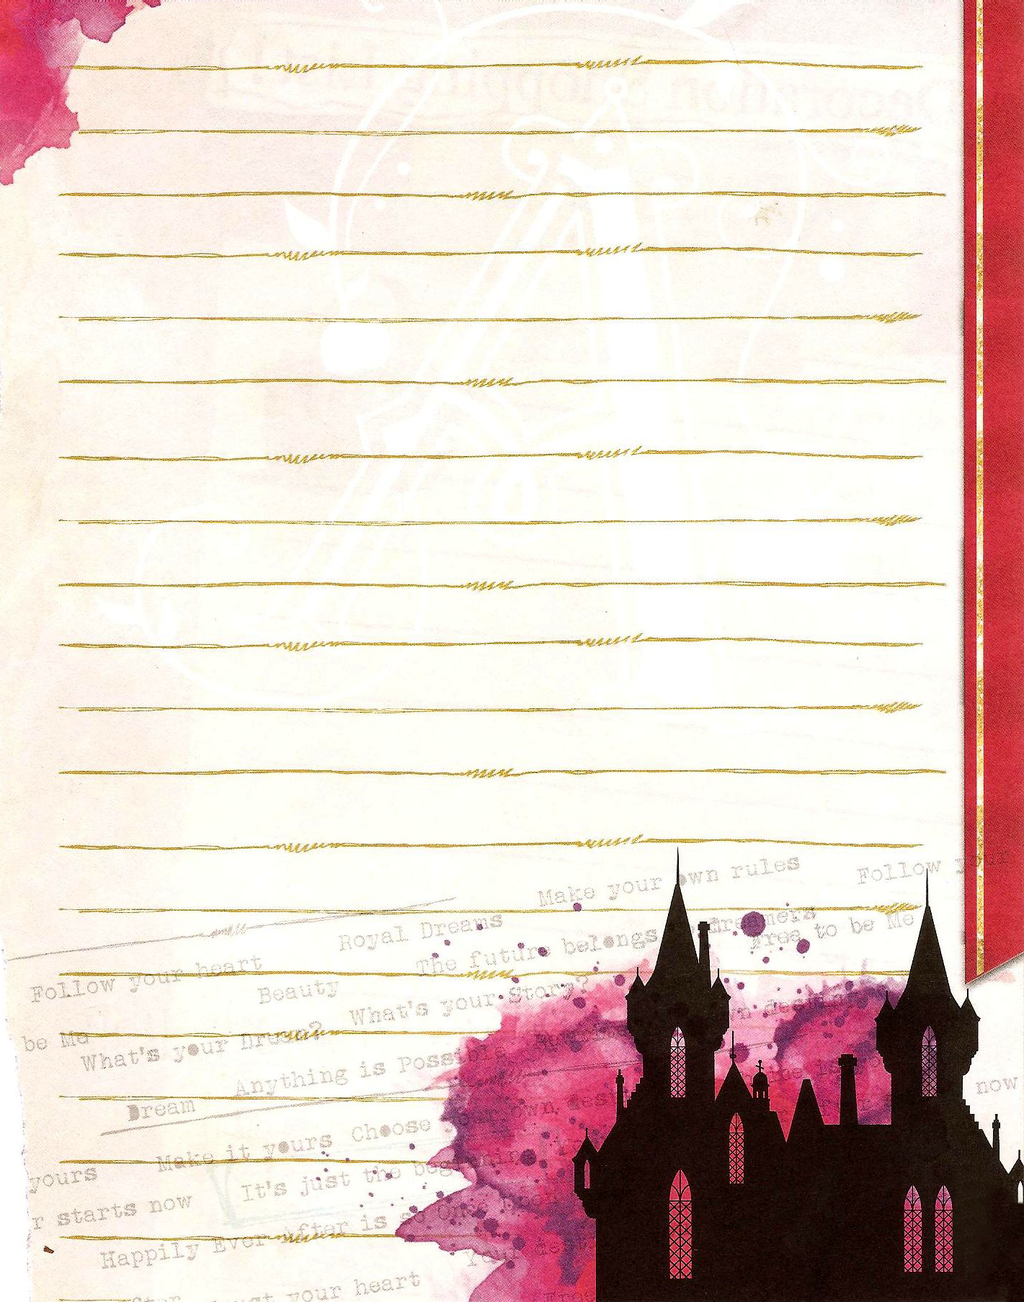 ever after high school logo note page by obscurepairing ever after high school logo note page by obscurepairing com on